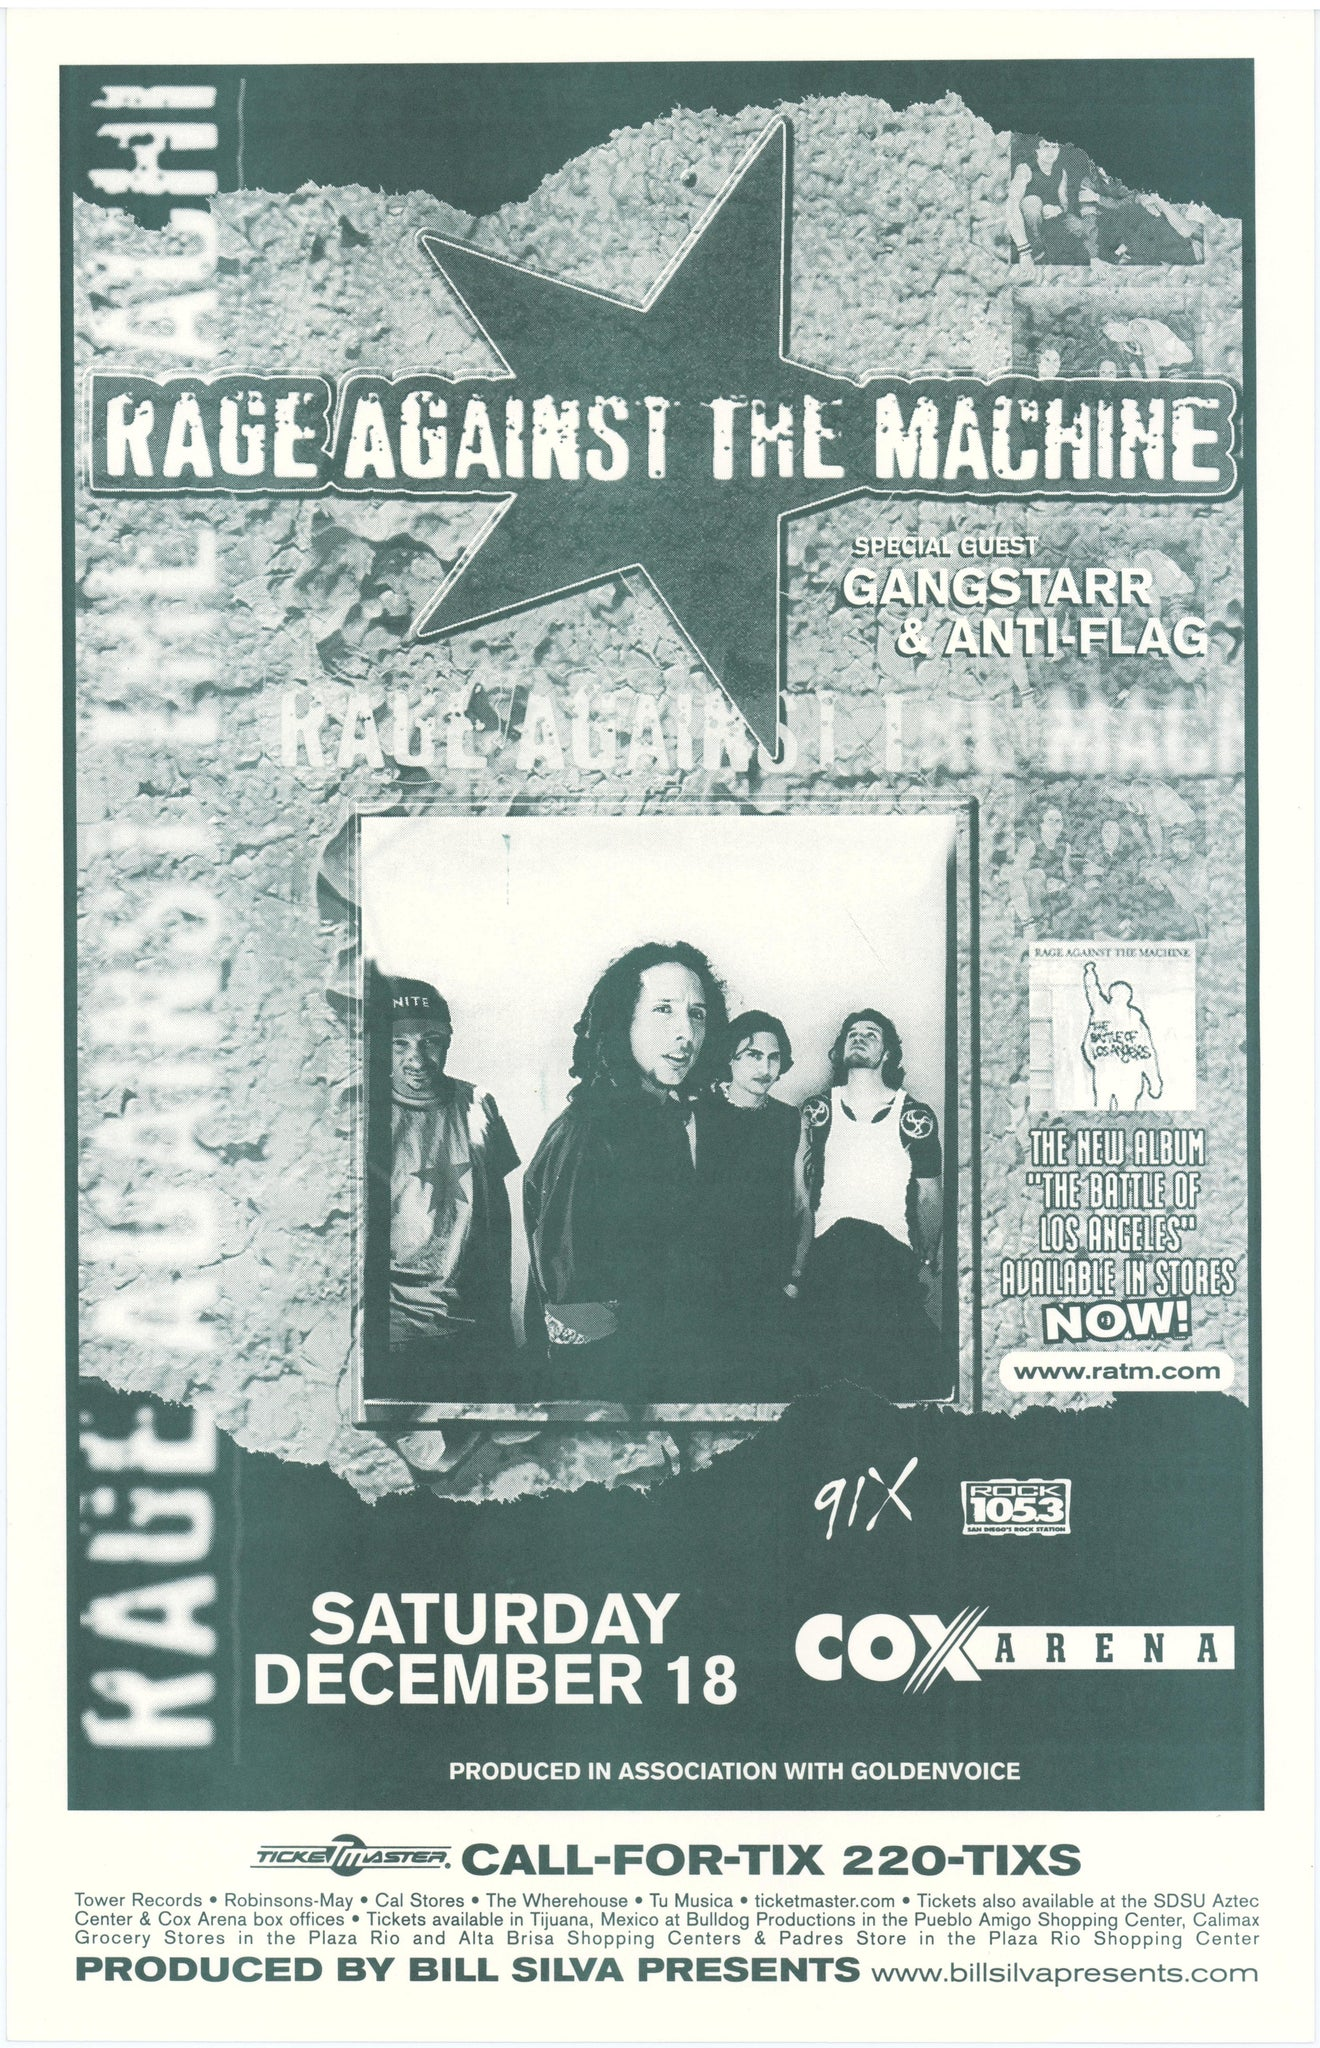 Rage Against The Machine Cox Arena December 18th Poster